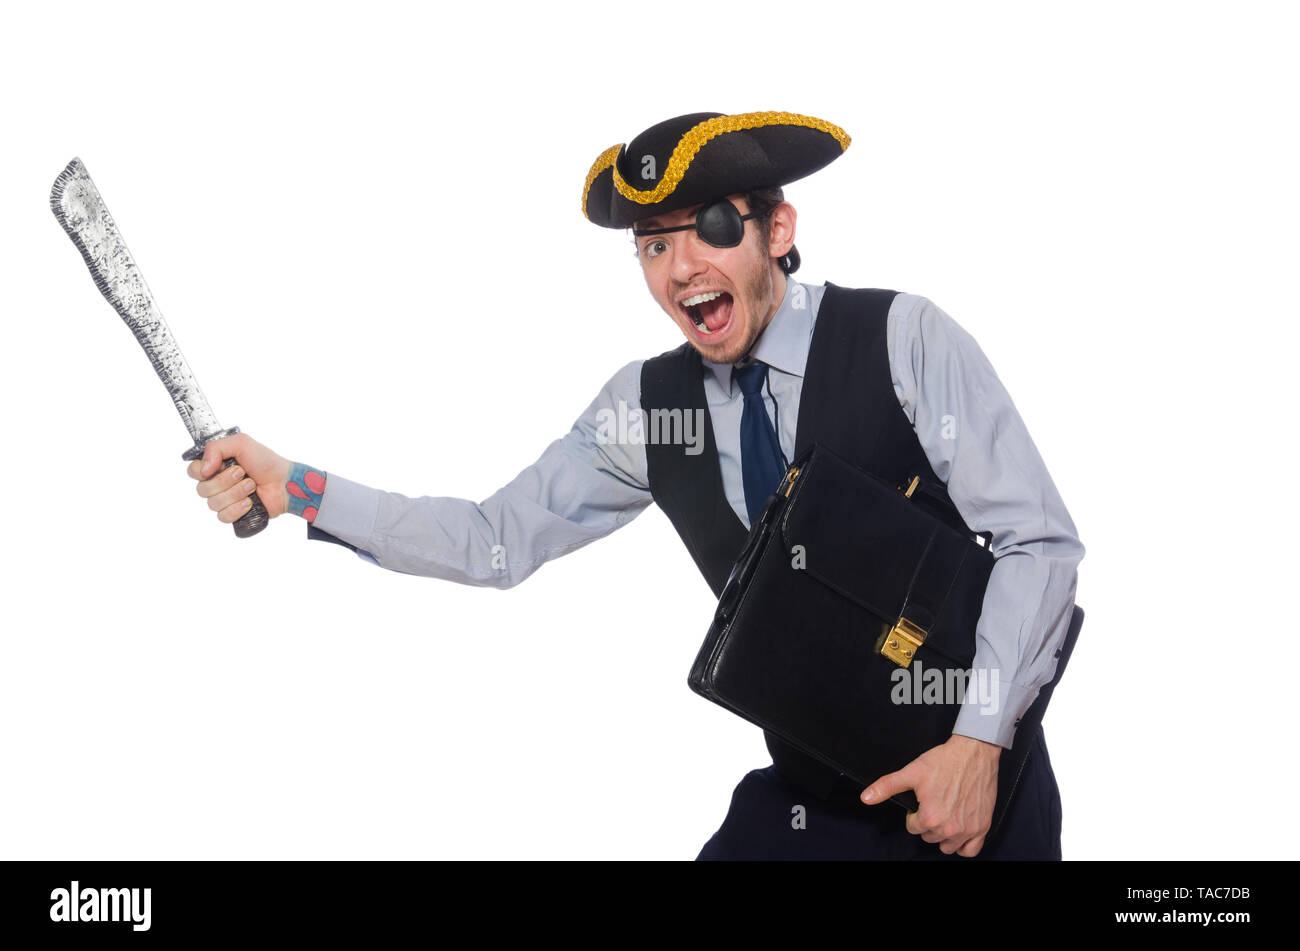 Businessman pirate isolated on white background - Stock Image